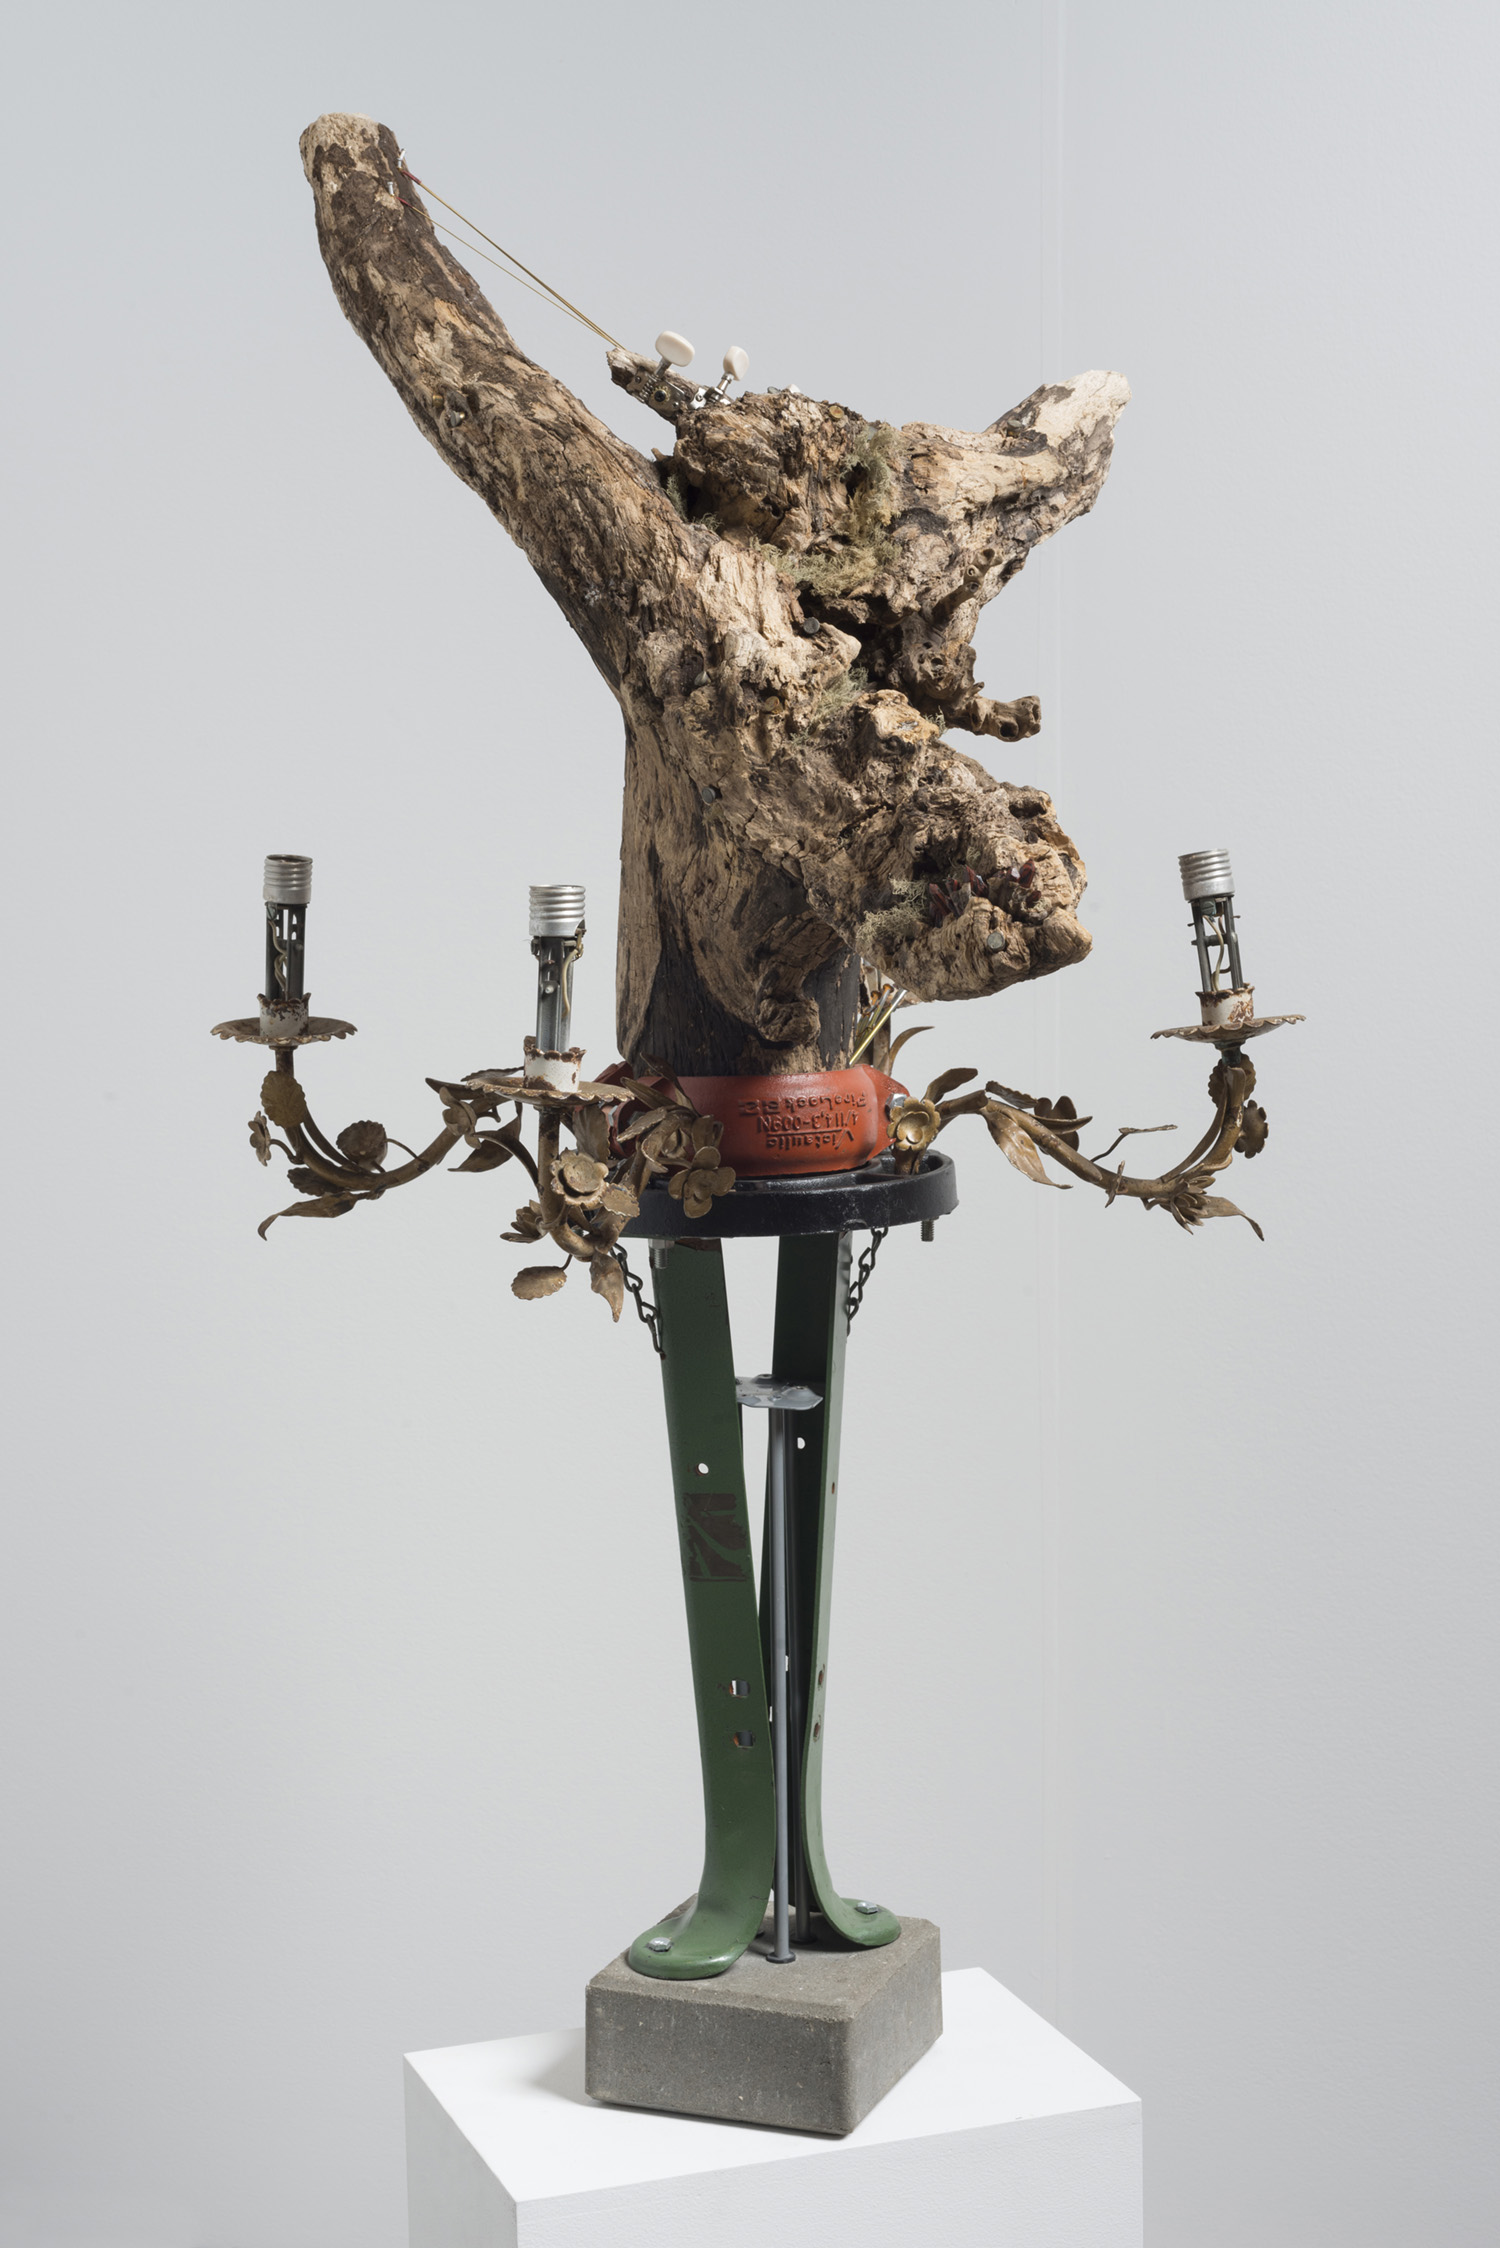 Lorna Williams-spoils-2013-chandelier fixtures, table legs, concrete, chain, plumbing hardware, Spanish moss, ukulele, root system, nails, wasp hive, acrylic, bullet casings-45x20x29(2).jpg